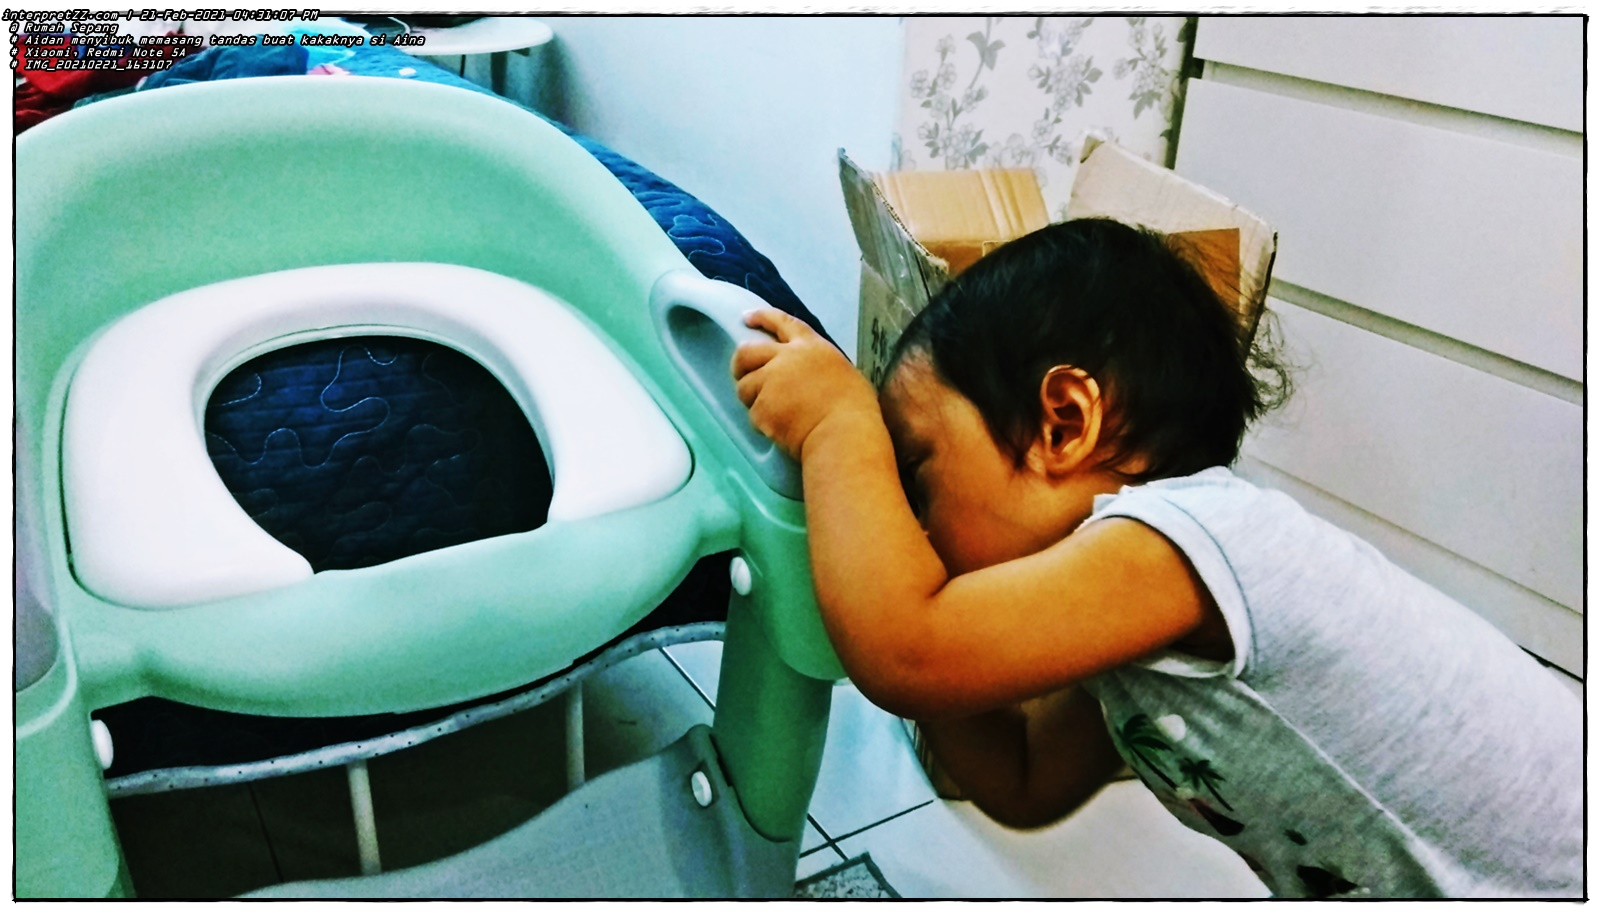 Aidan's action picture is busy also trying to install a toilet for his sister Aina. Hopefully with a special toilet for Aina this will make it easier for her to learn to defecate in the toilet (potty train) and not wear diapers anymore.